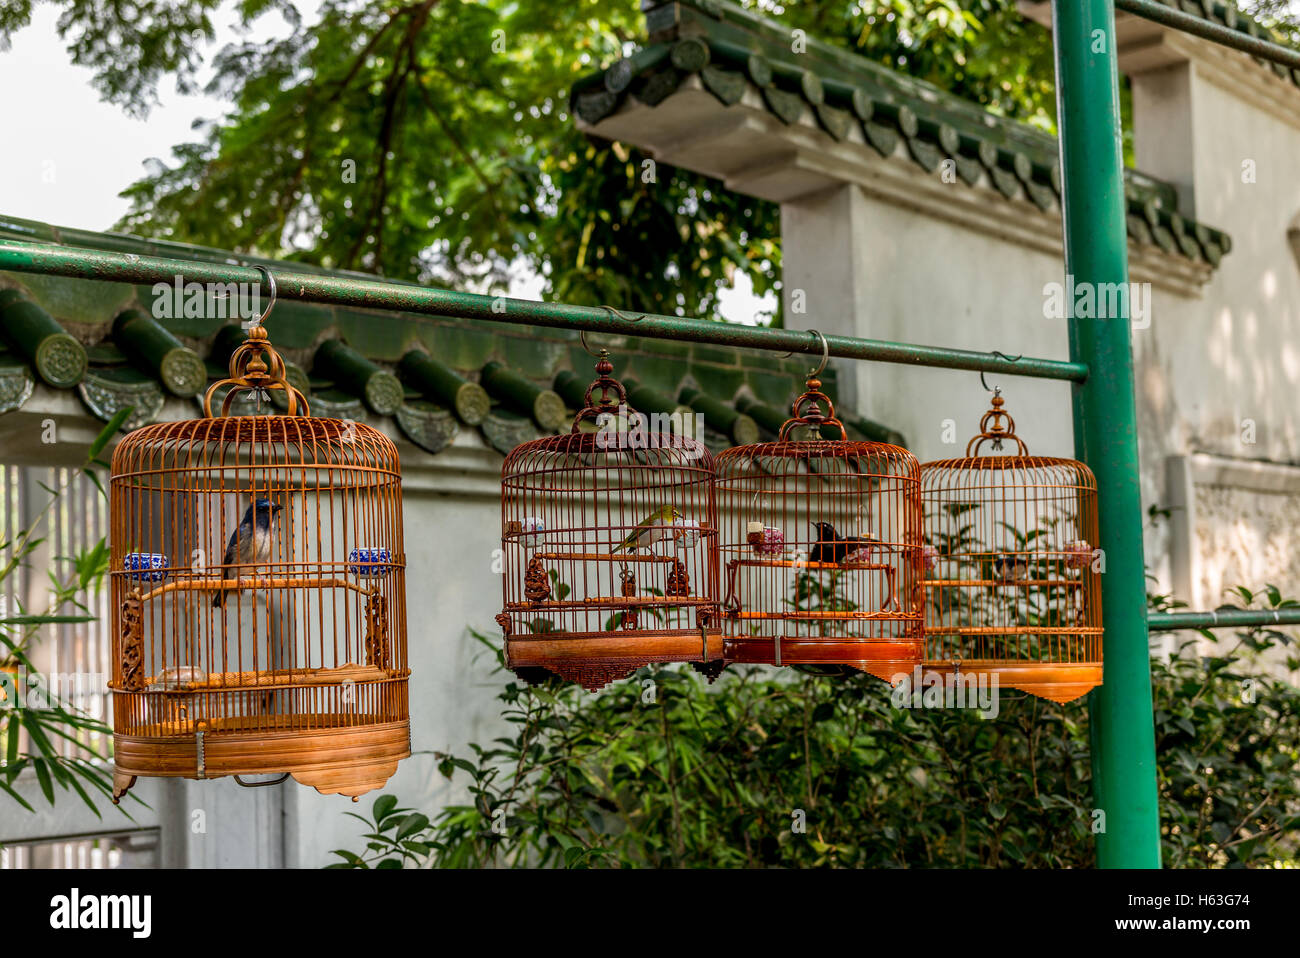 Birds in cages hanging at the Bird Garden and market in Yuen Po ...